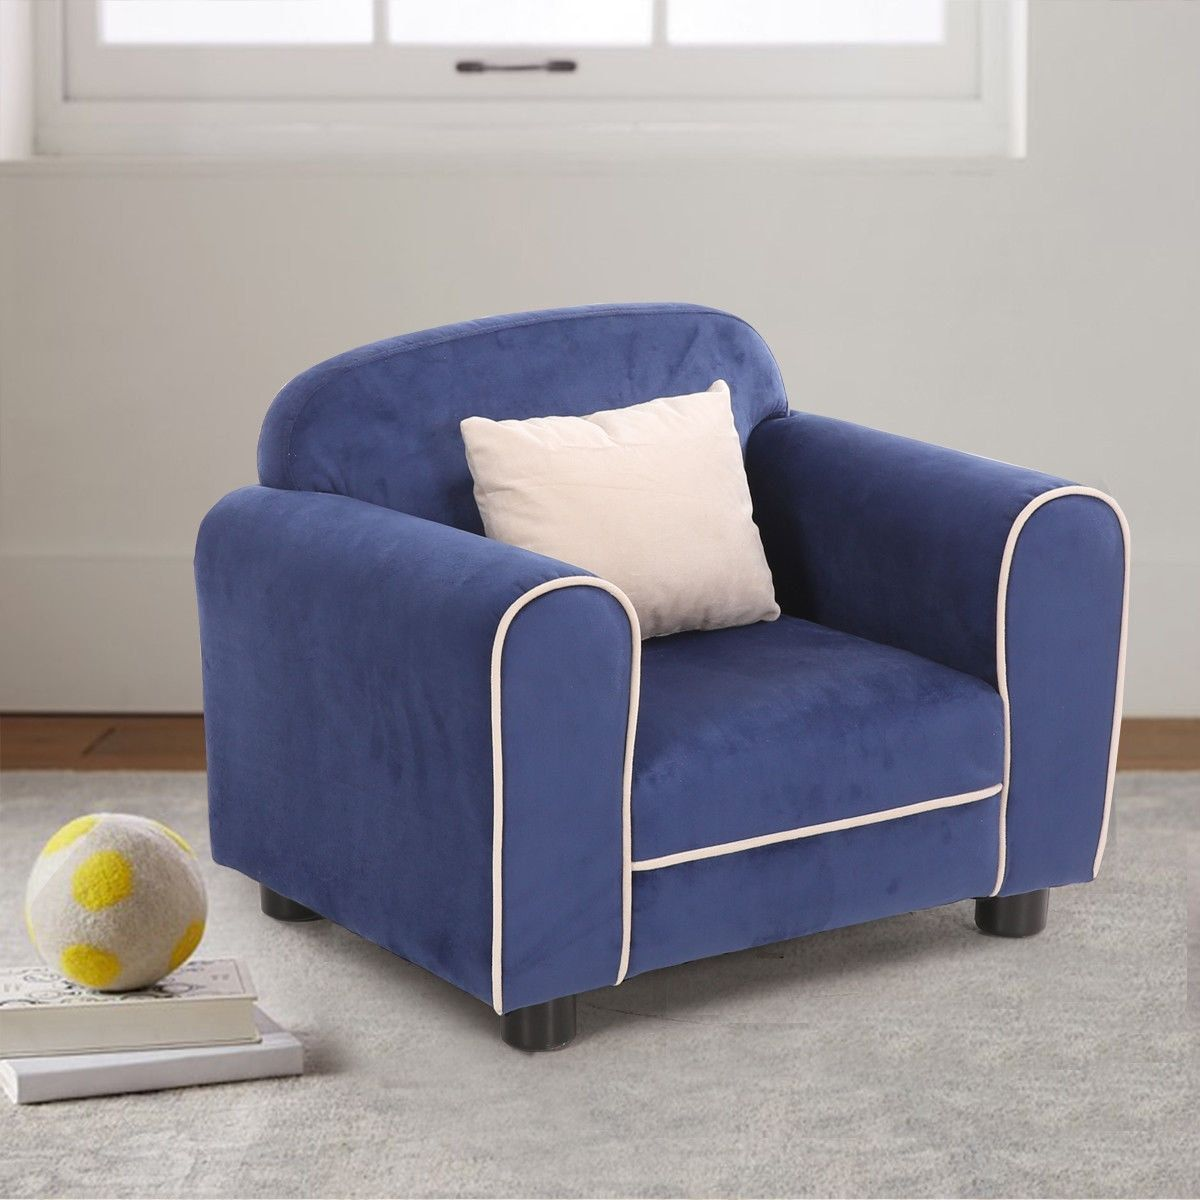 Beautiful Costway Blue Kids Sofa Armrest Chair Children Toddler Living Room Furniture  W Cushion